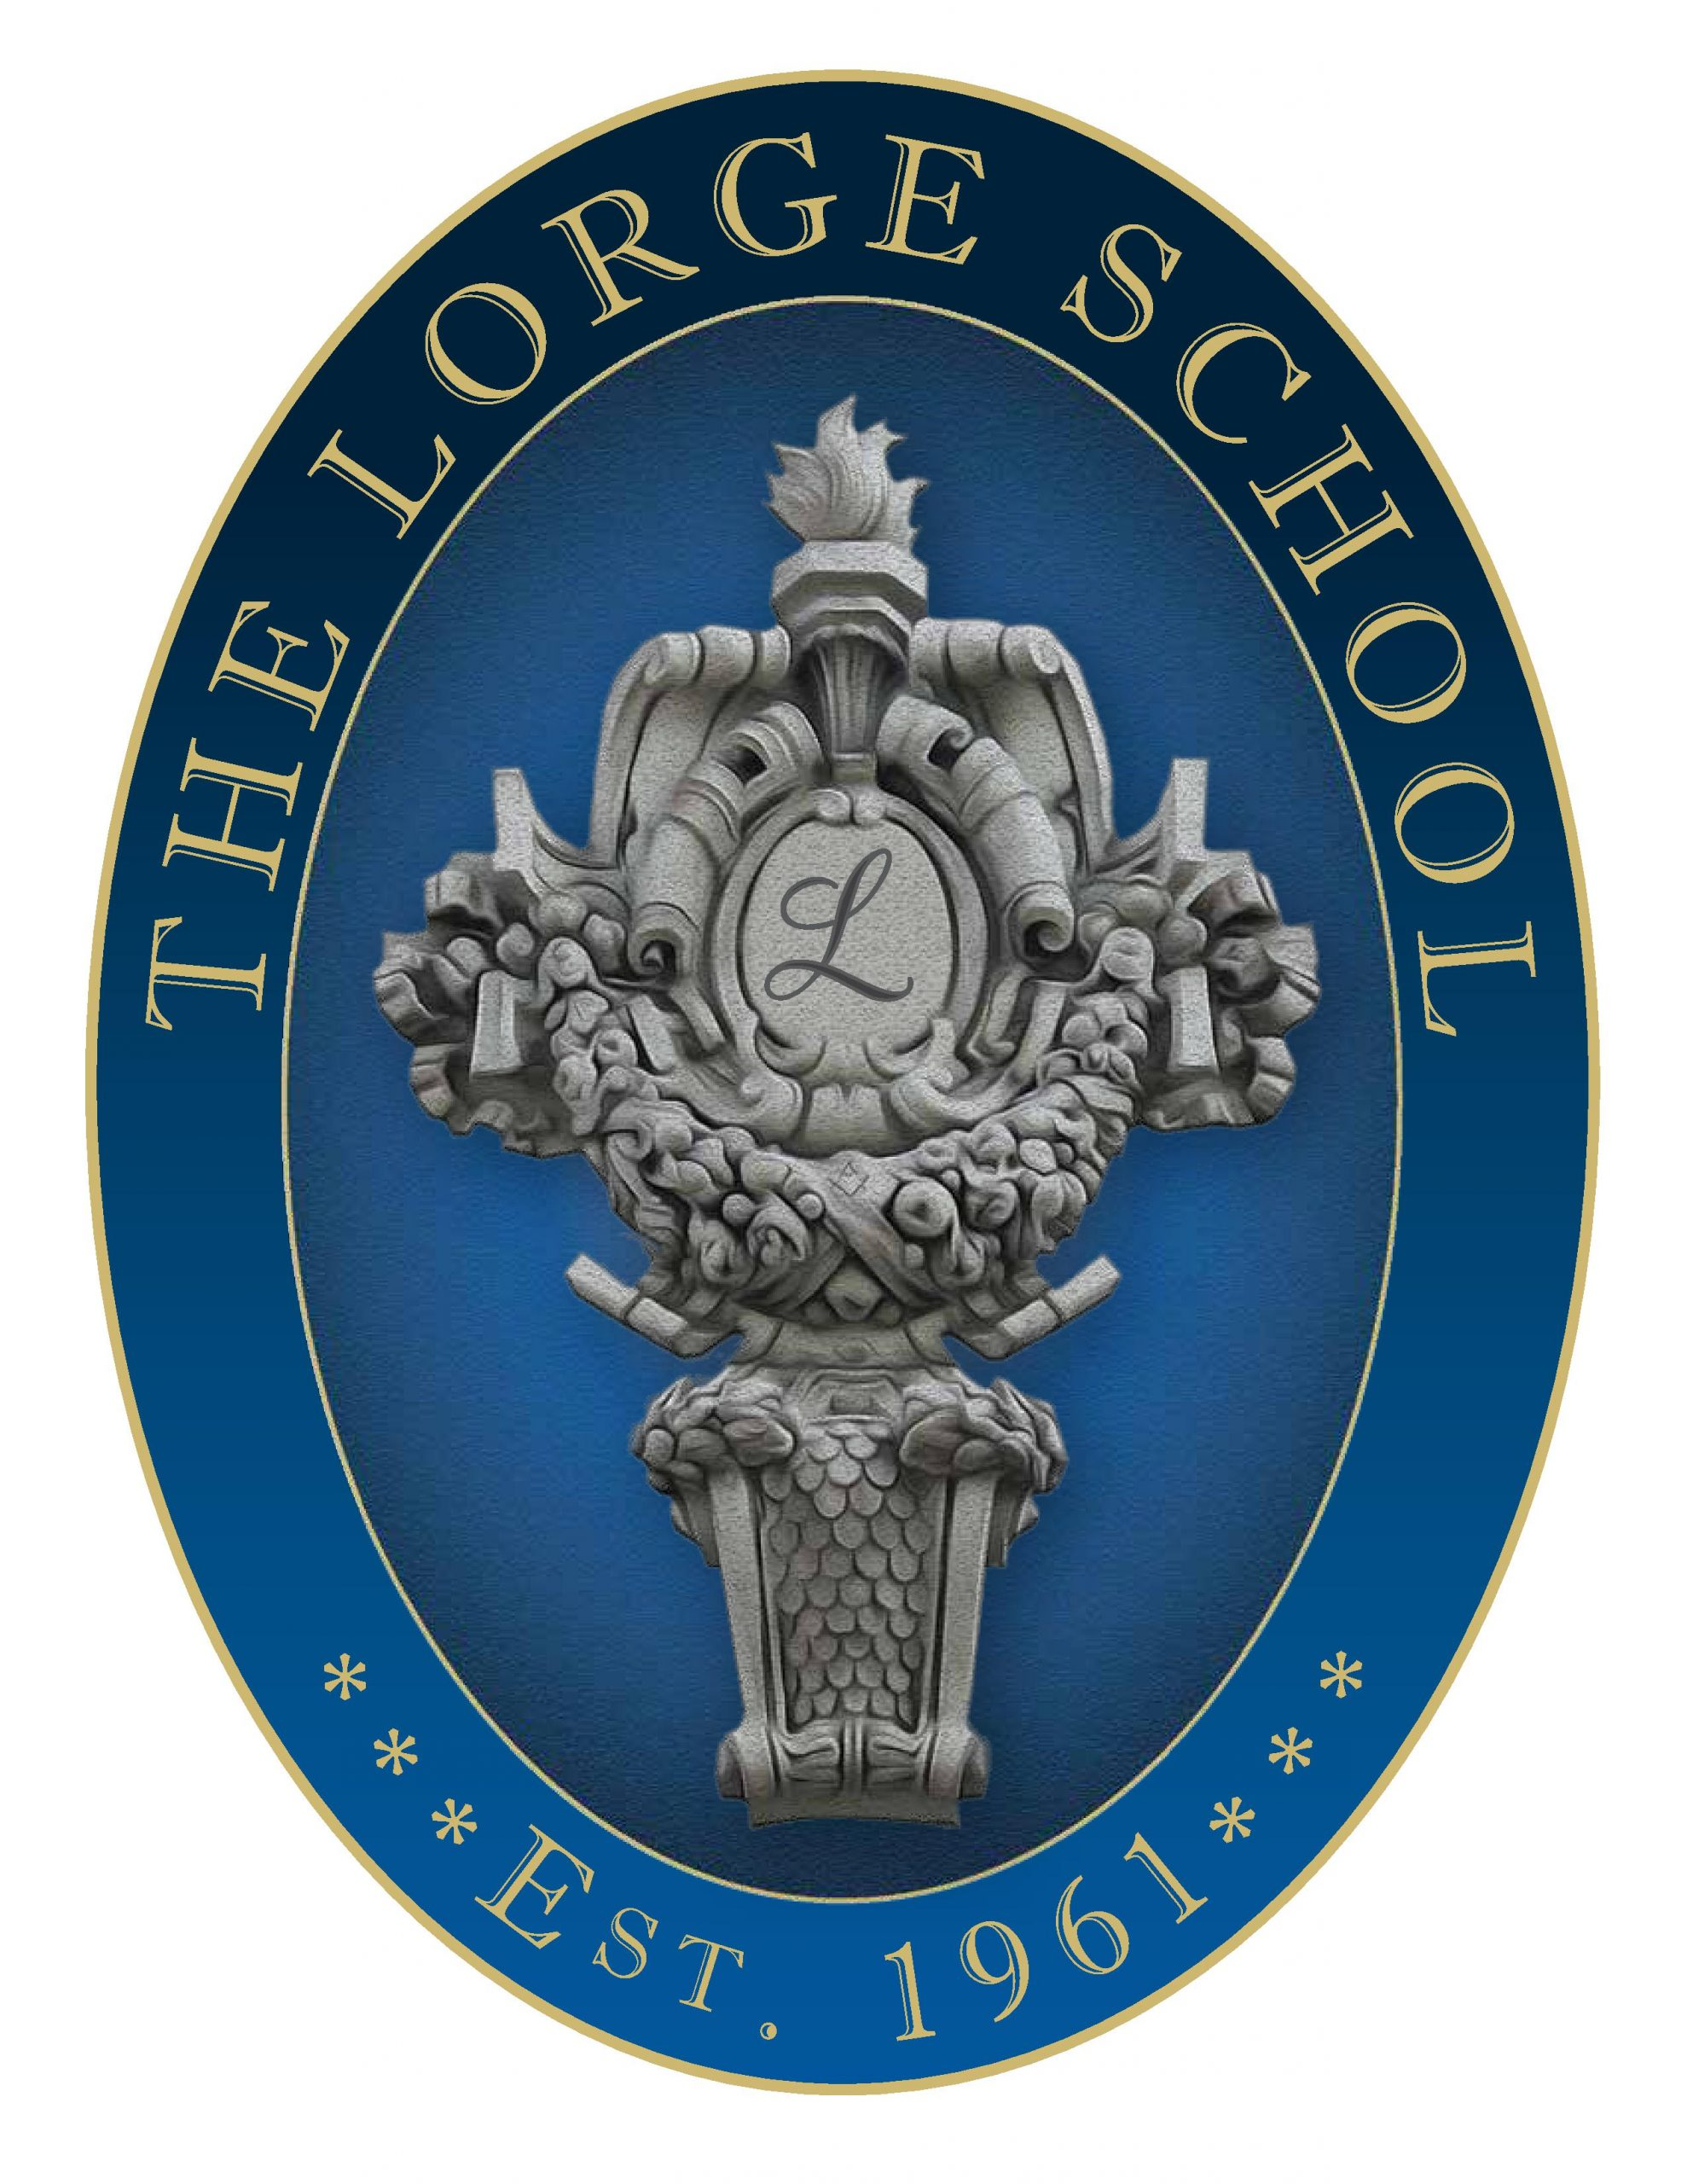 The Lorge School